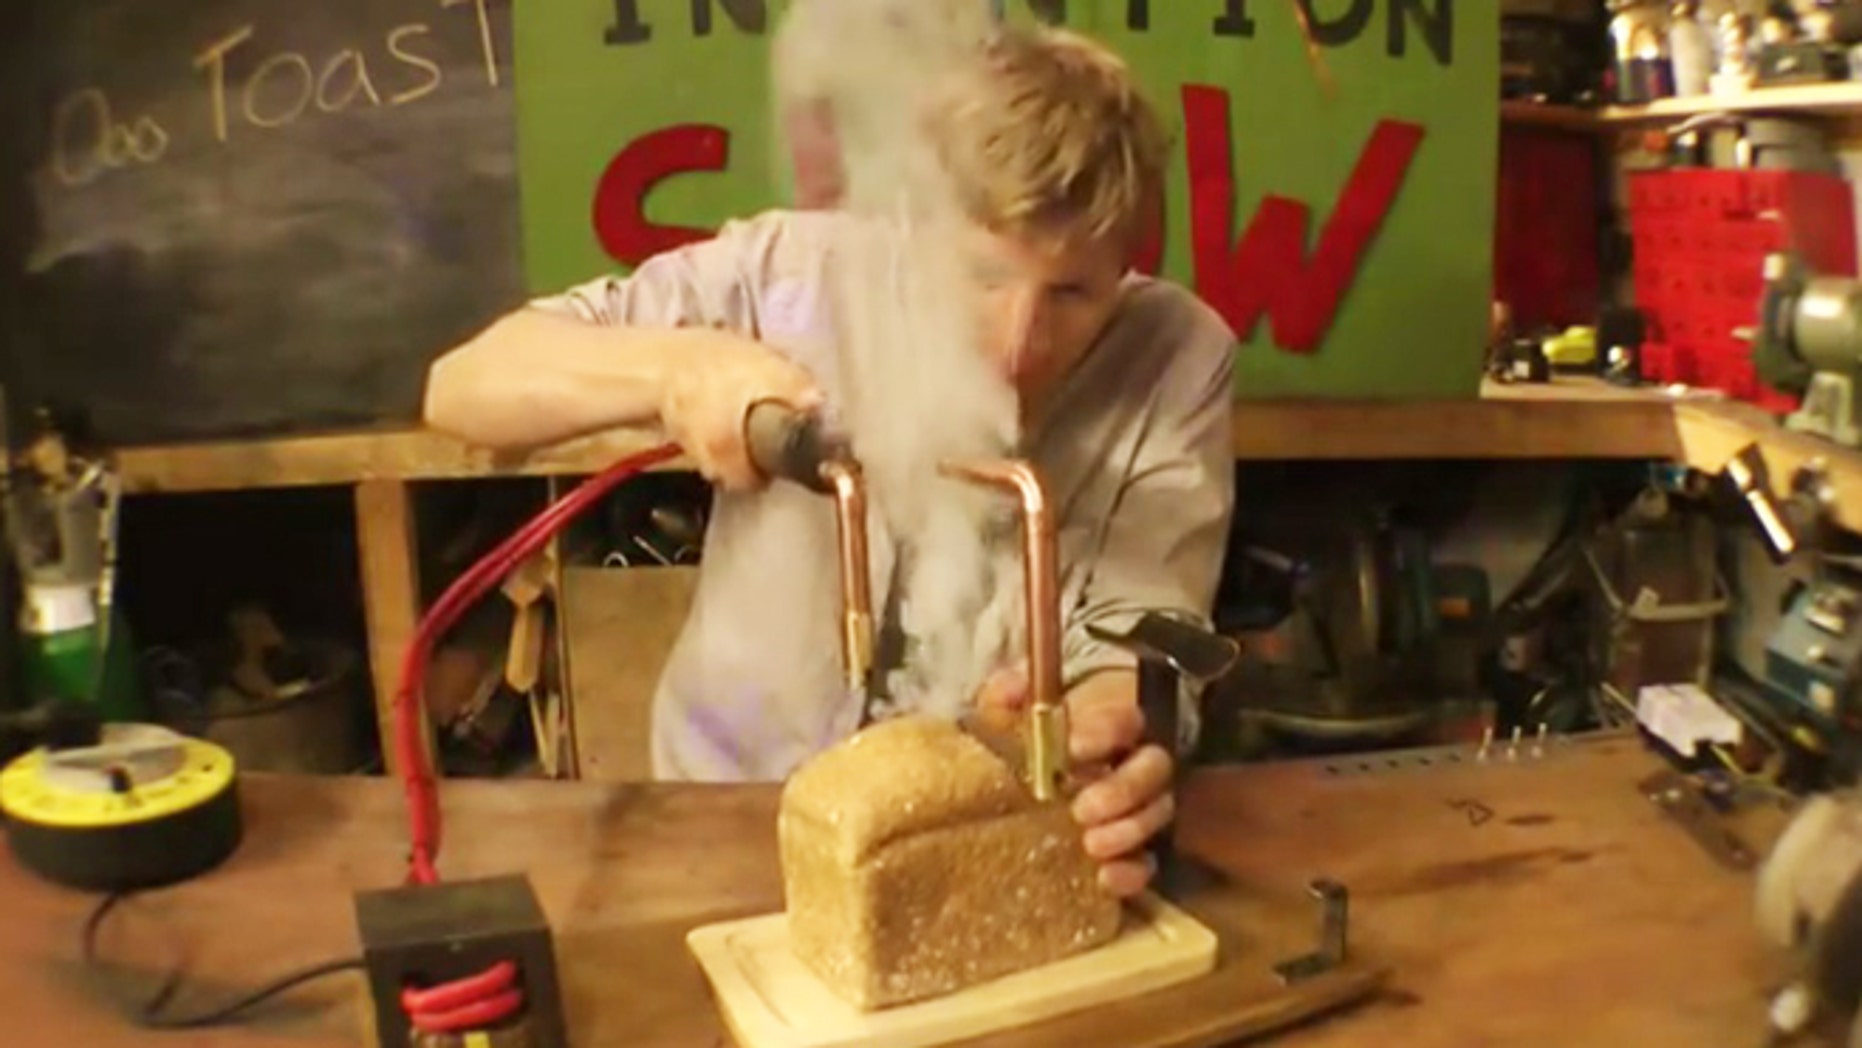 Get smokin' in the kitchen with this knife that toasts and slices bread at the same time.